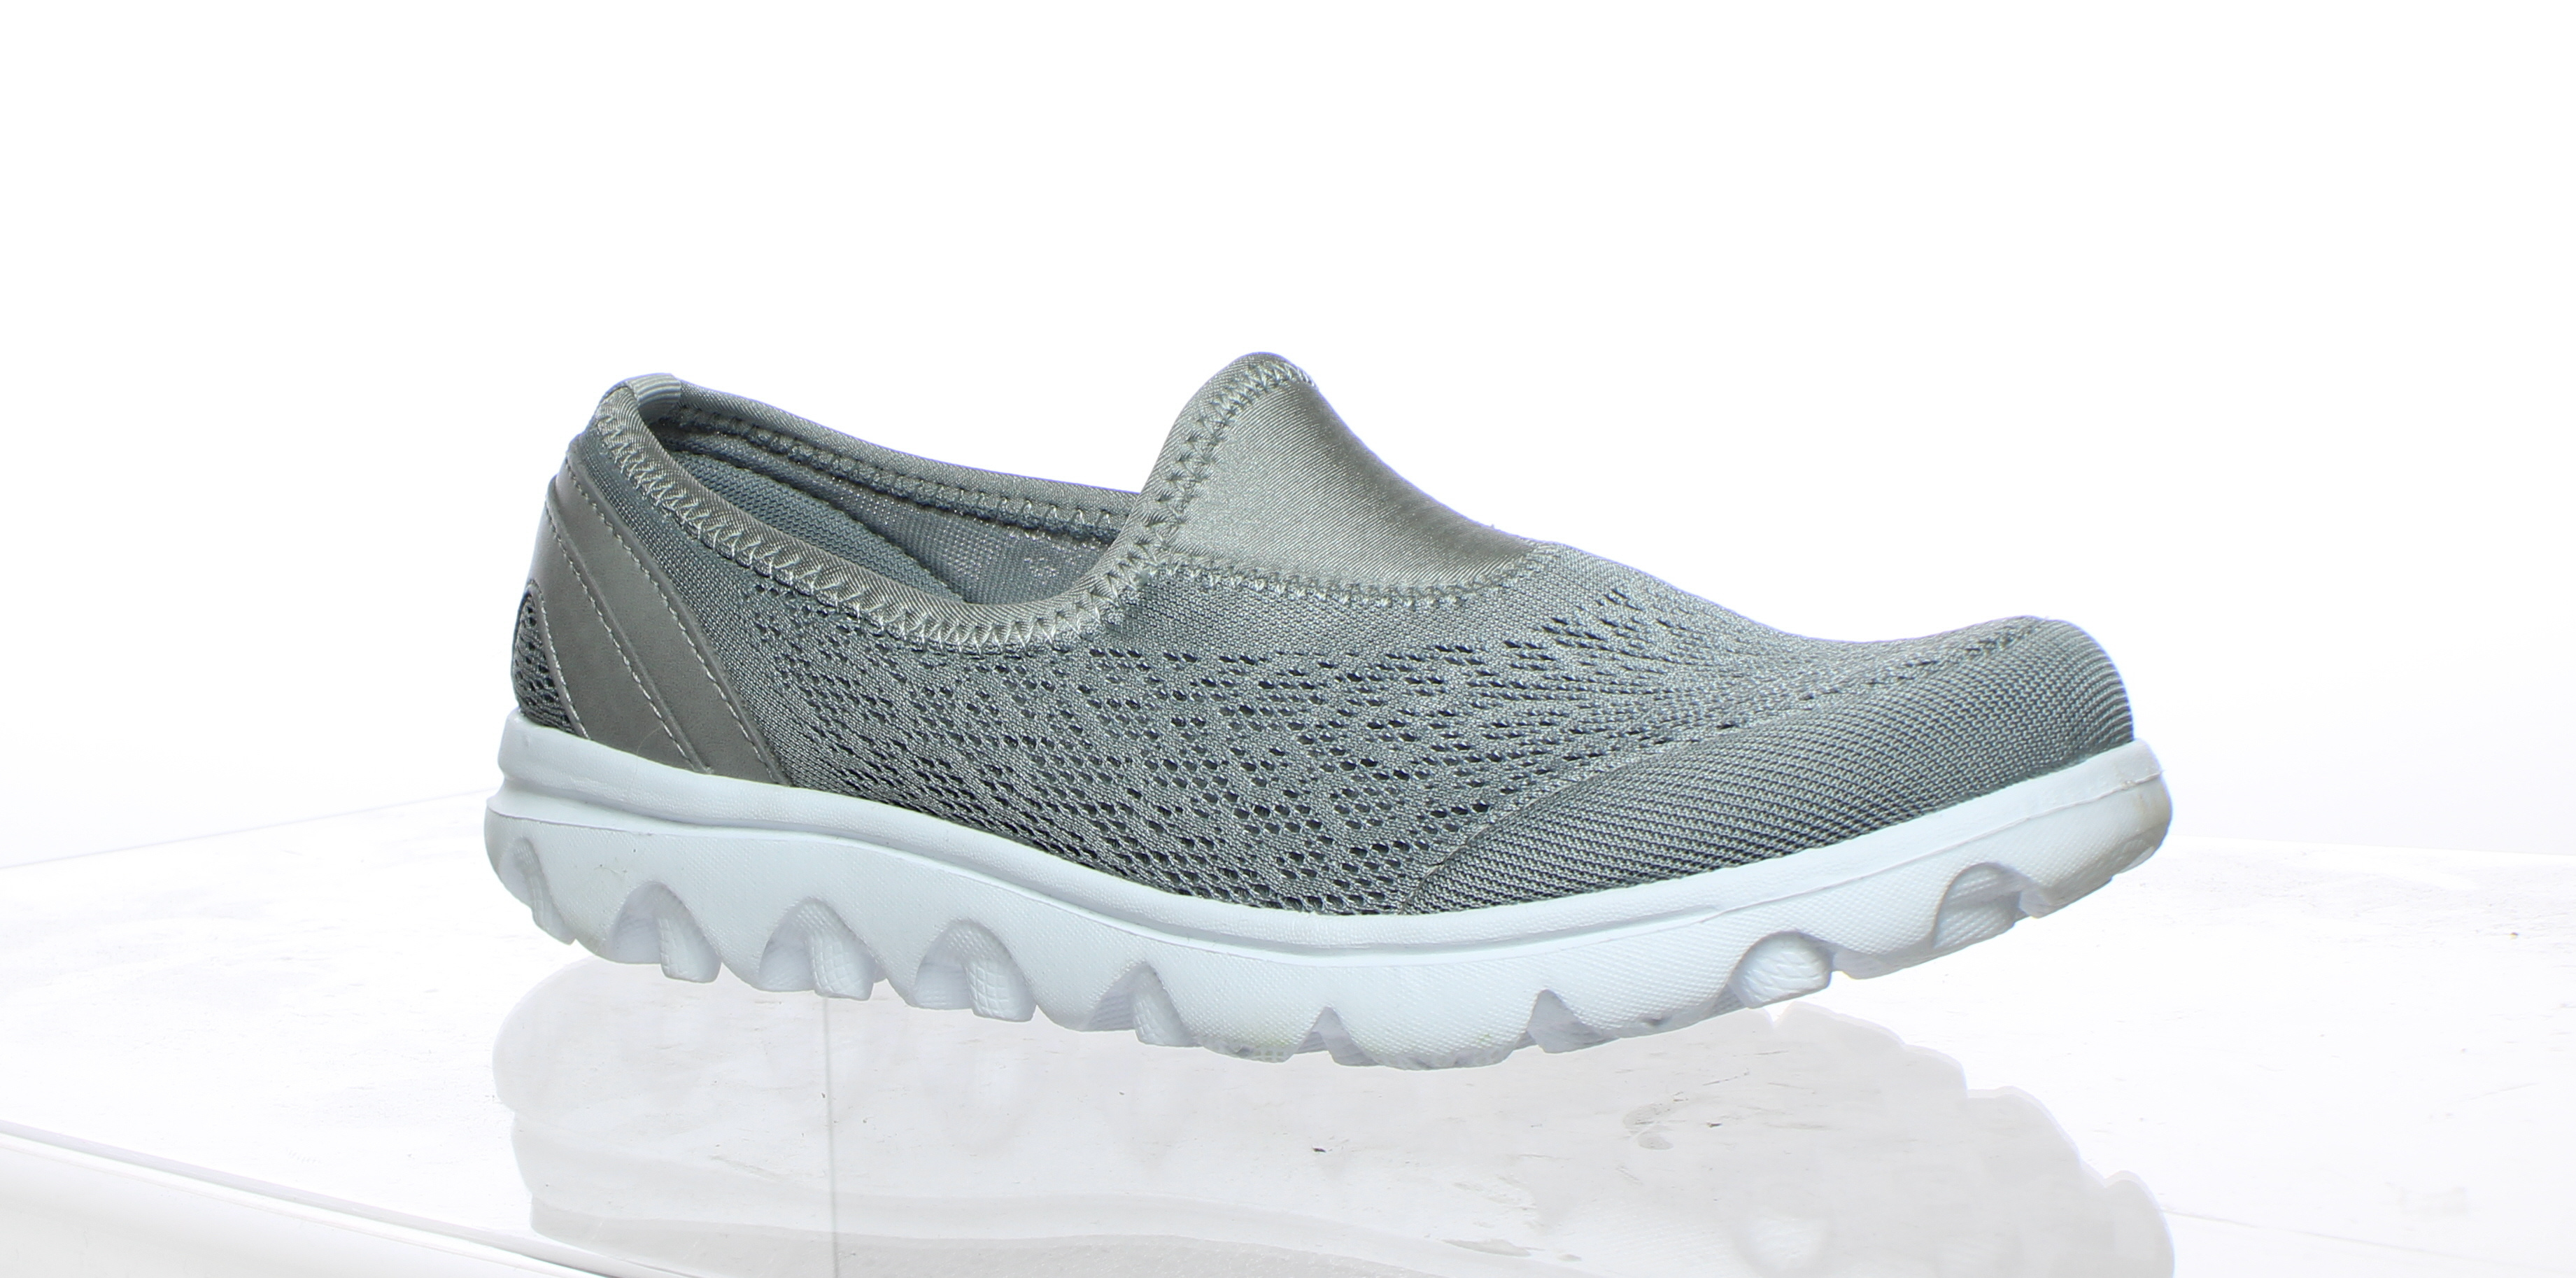 6a764cad4 Propet Womens Travelactiv Slip On Silver Walking Shoes Size 7 ...